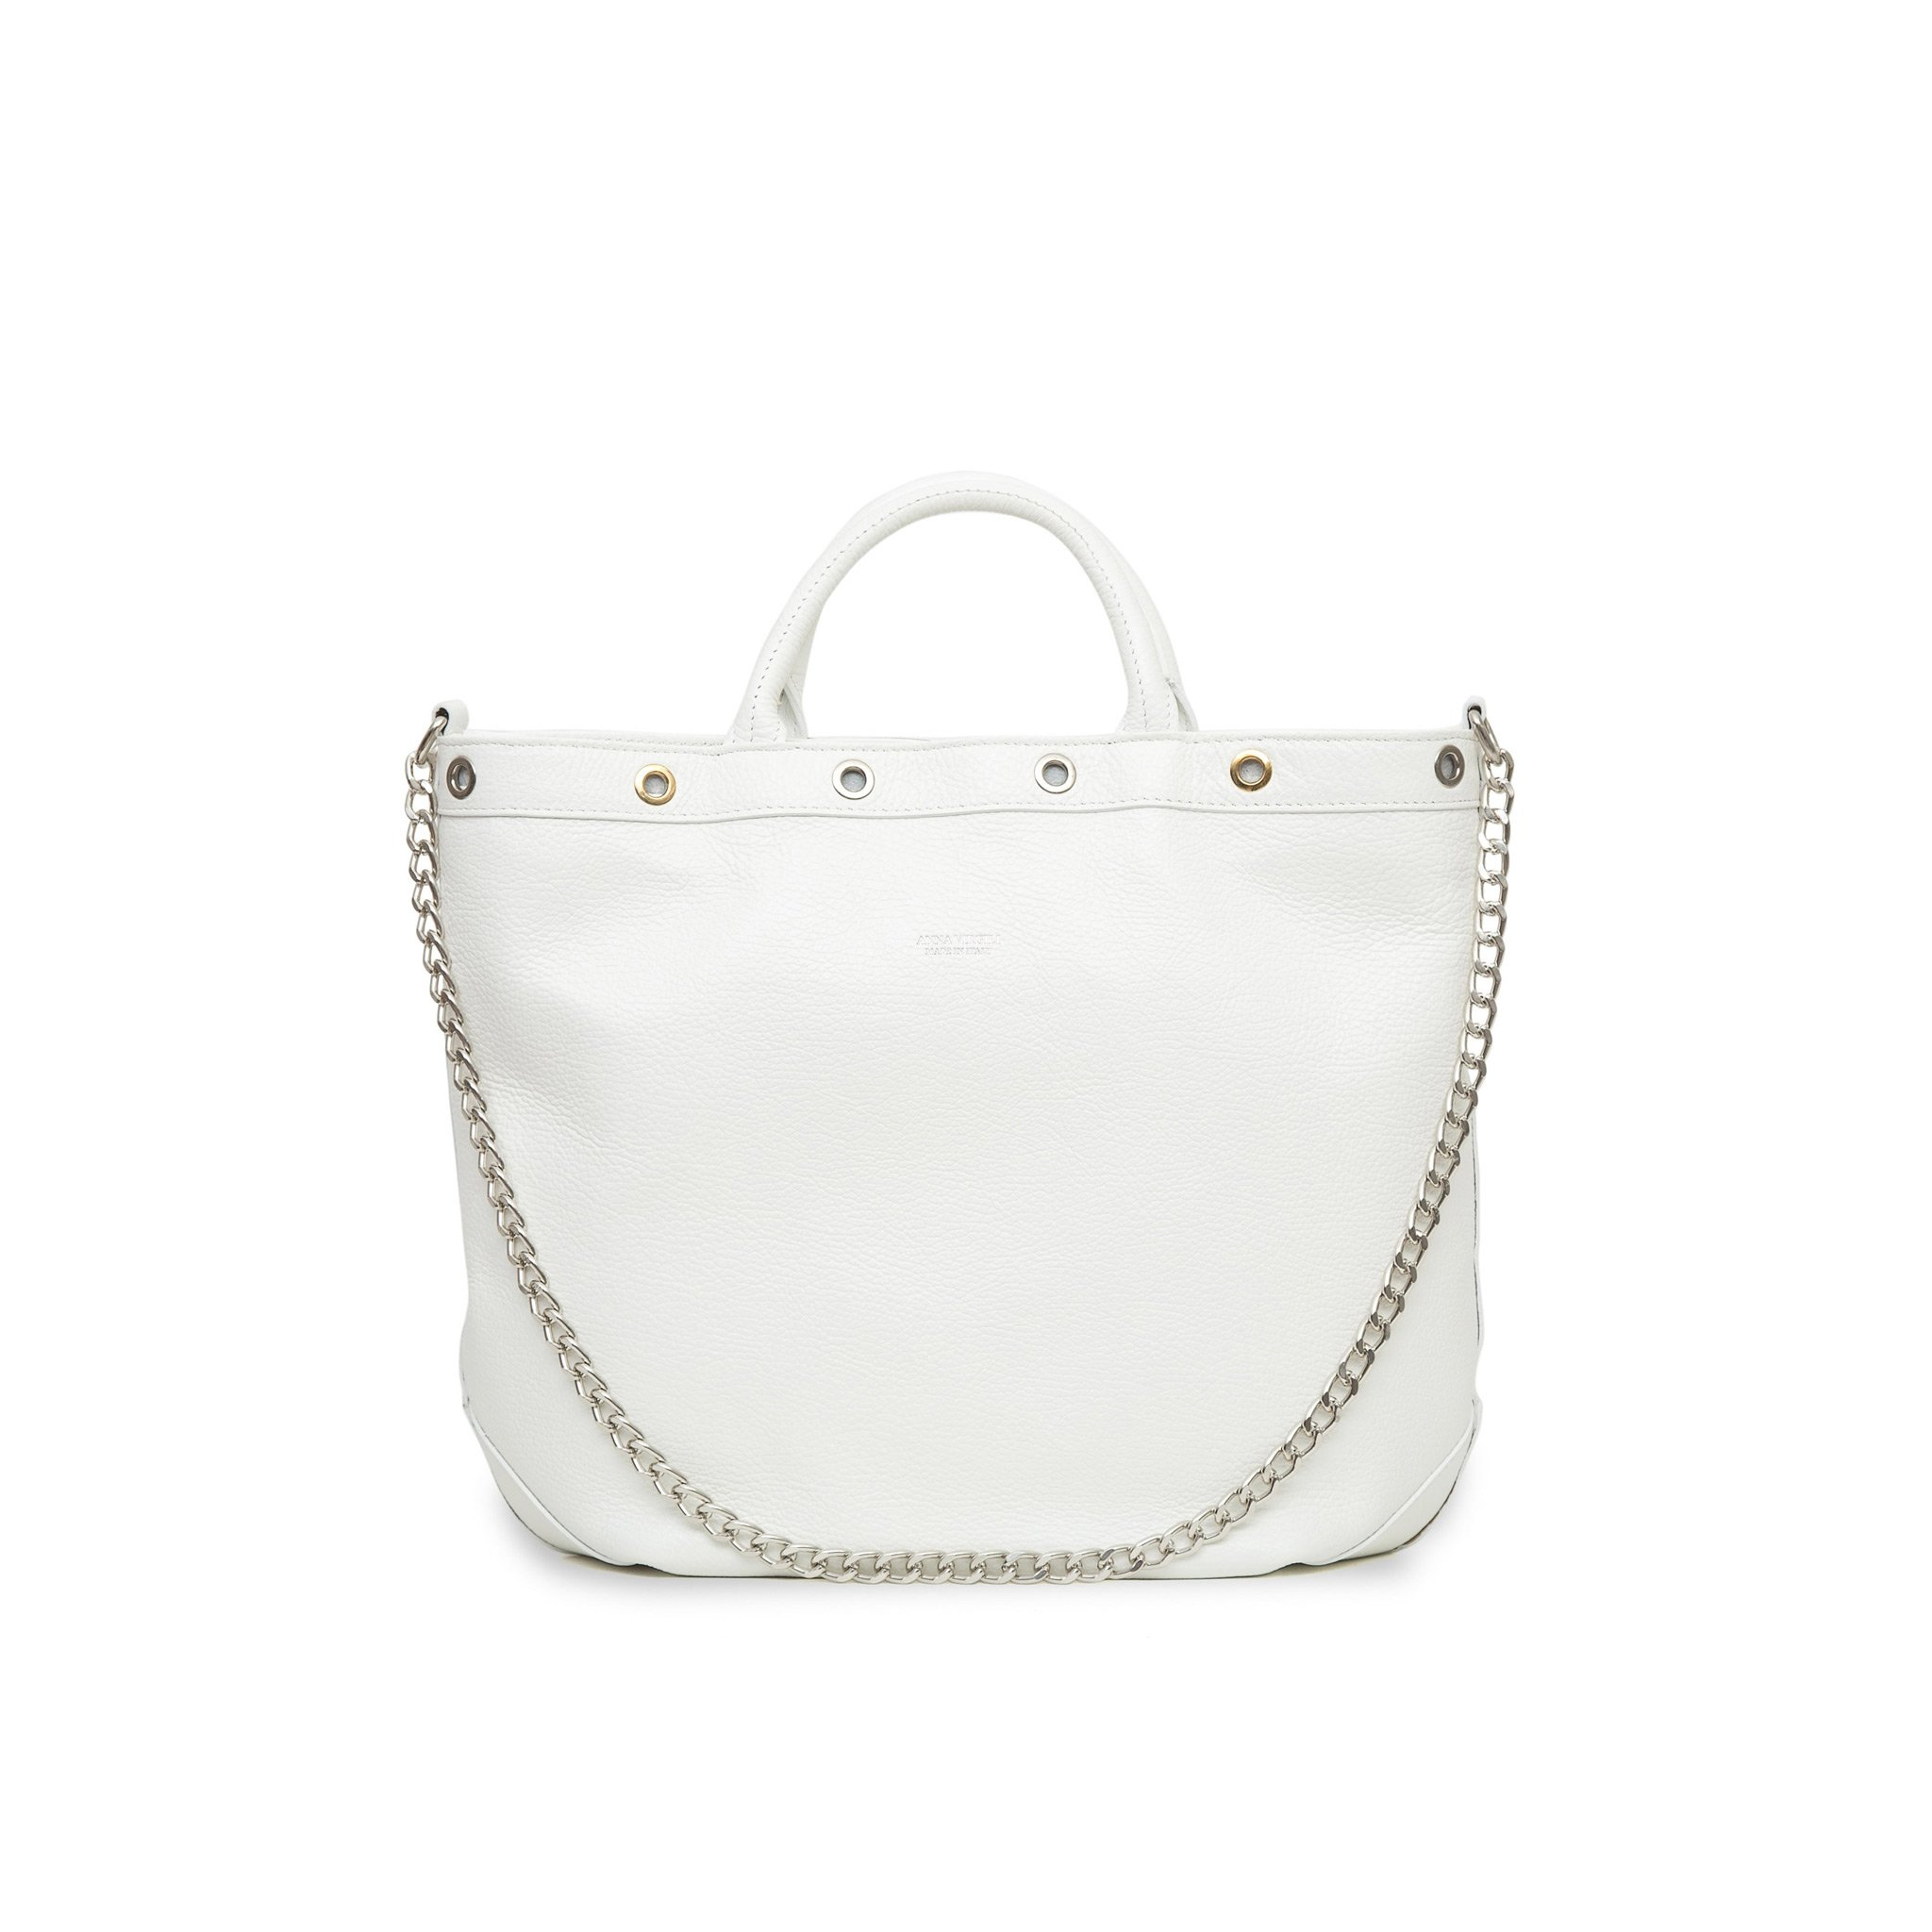 Naide Rock Leather Handbag - White